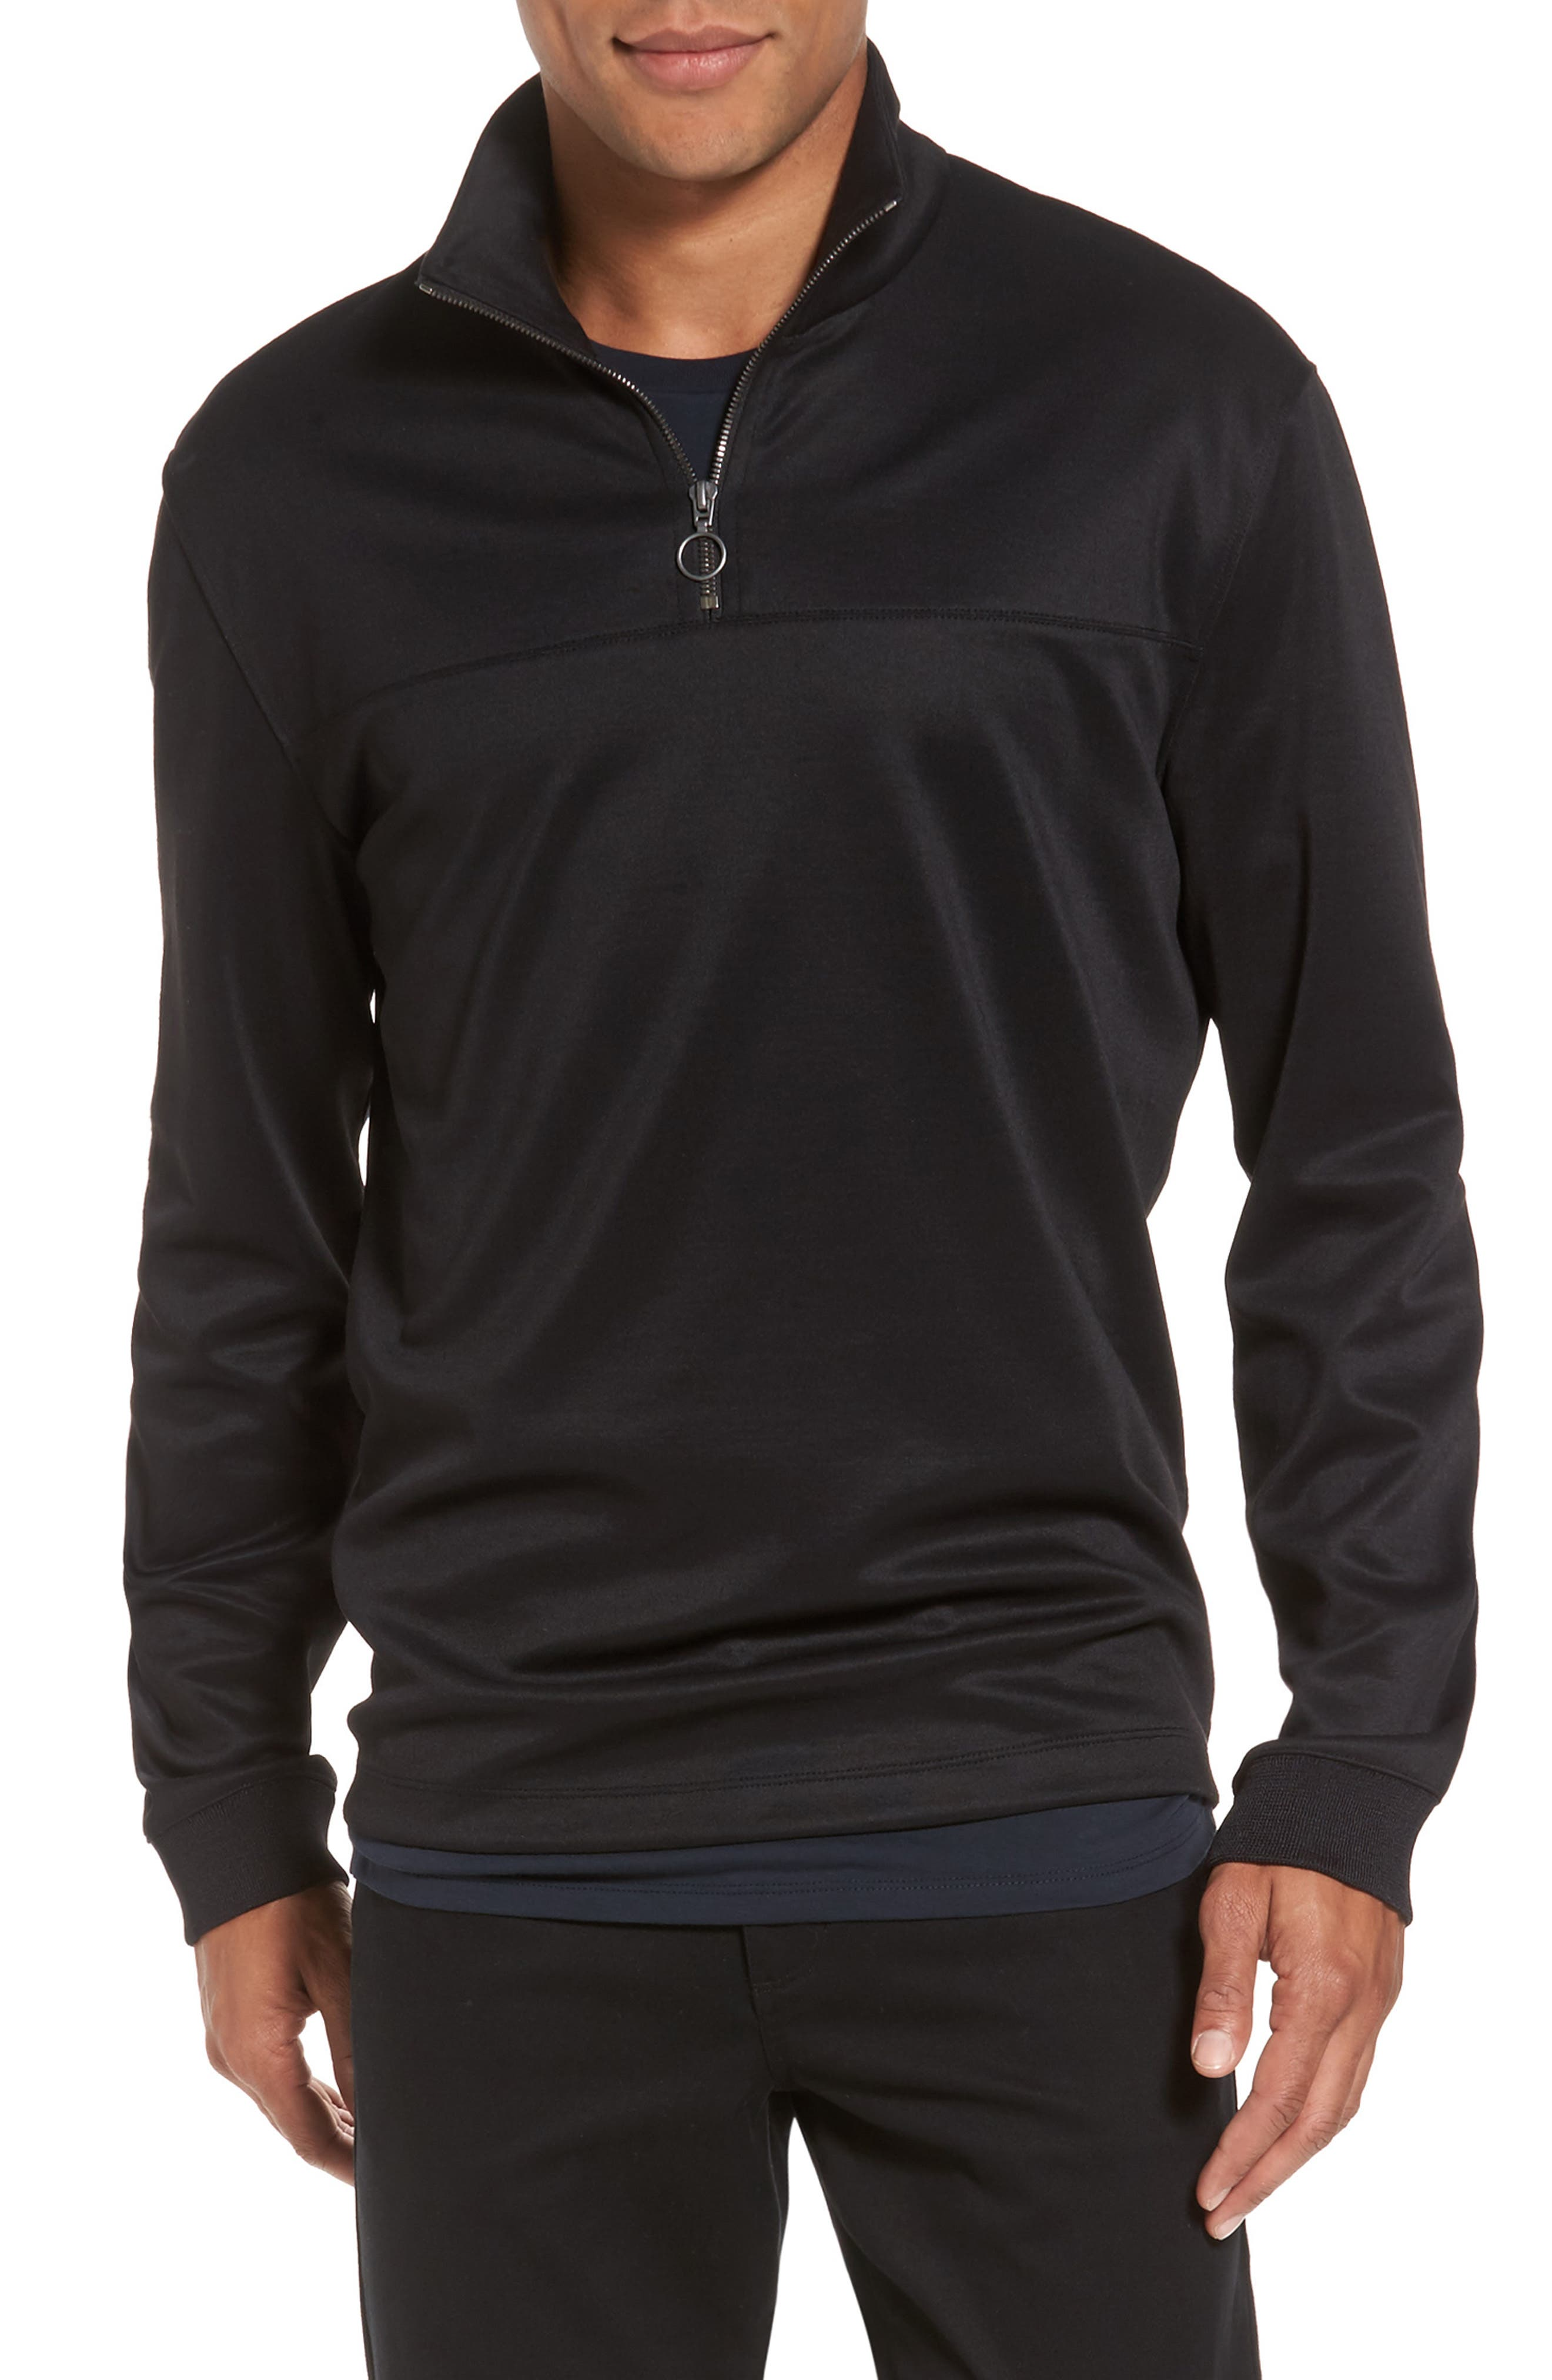 Quarter Zip Jacket,                             Main thumbnail 1, color,                             001